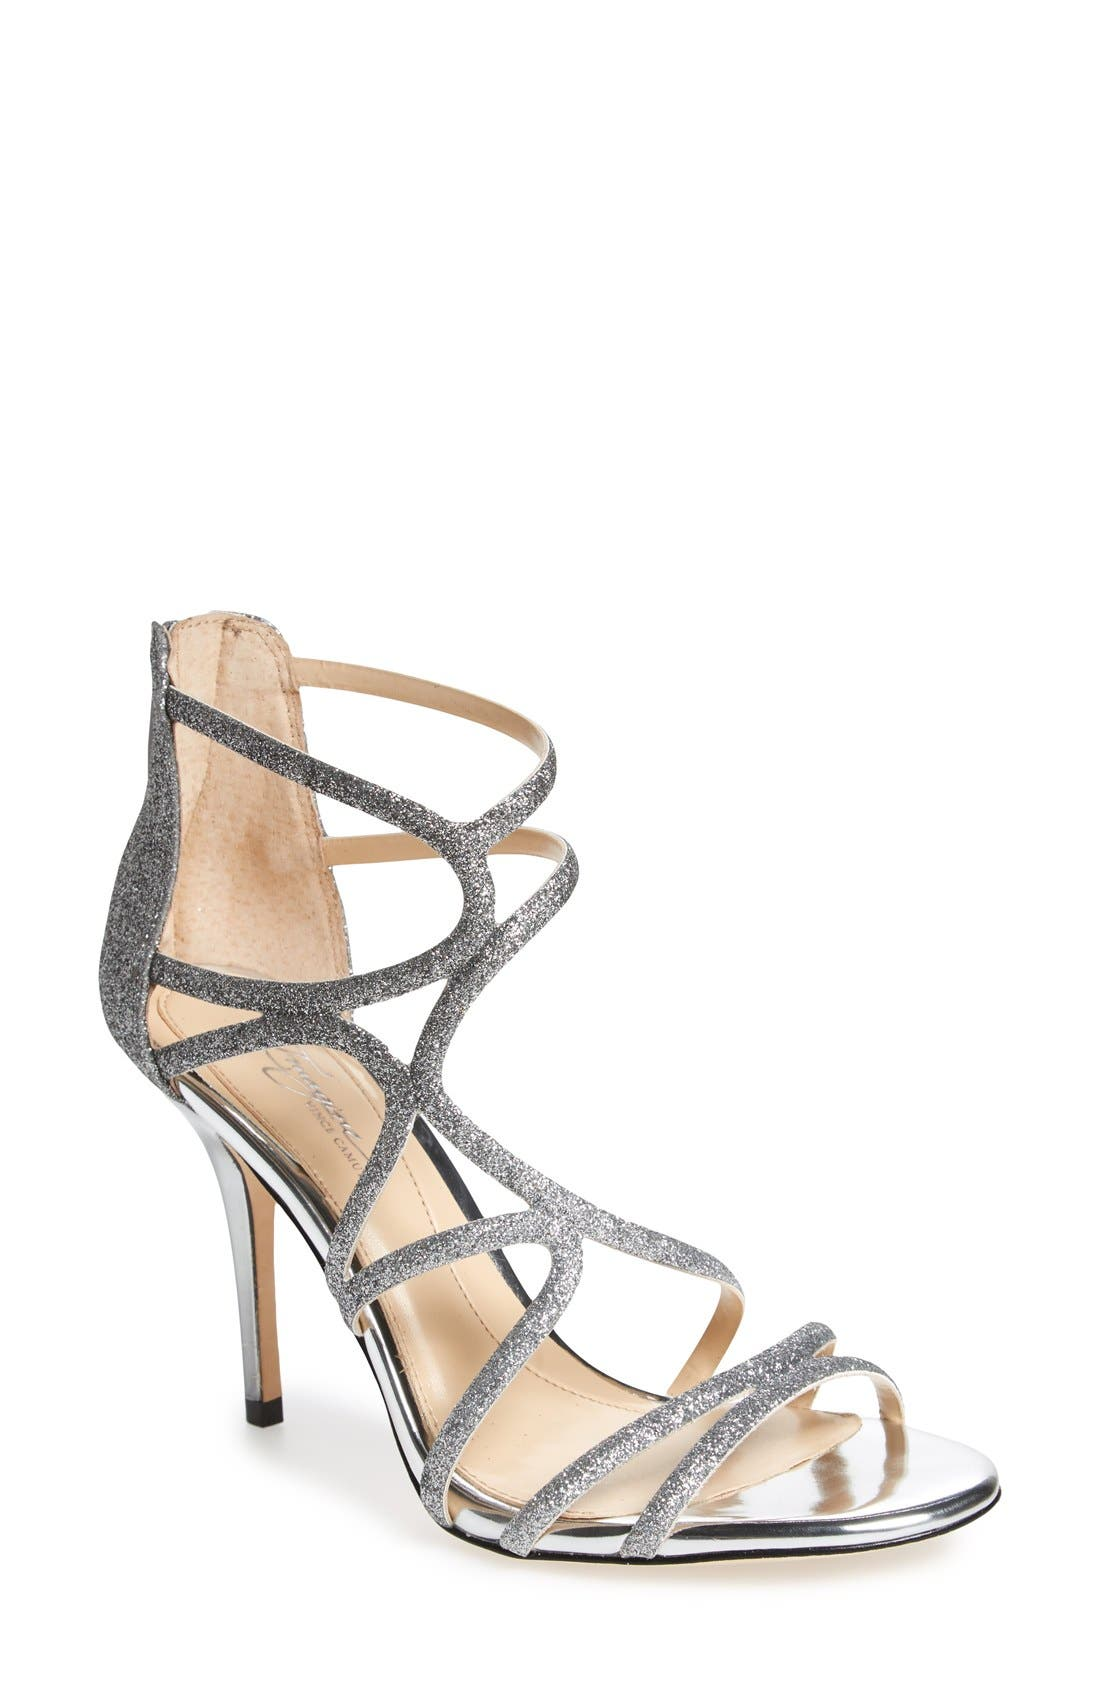 Alternate Image 1 Selected - Imagine by Vince Camuto 'Ranee' Dress Sandal (Women)